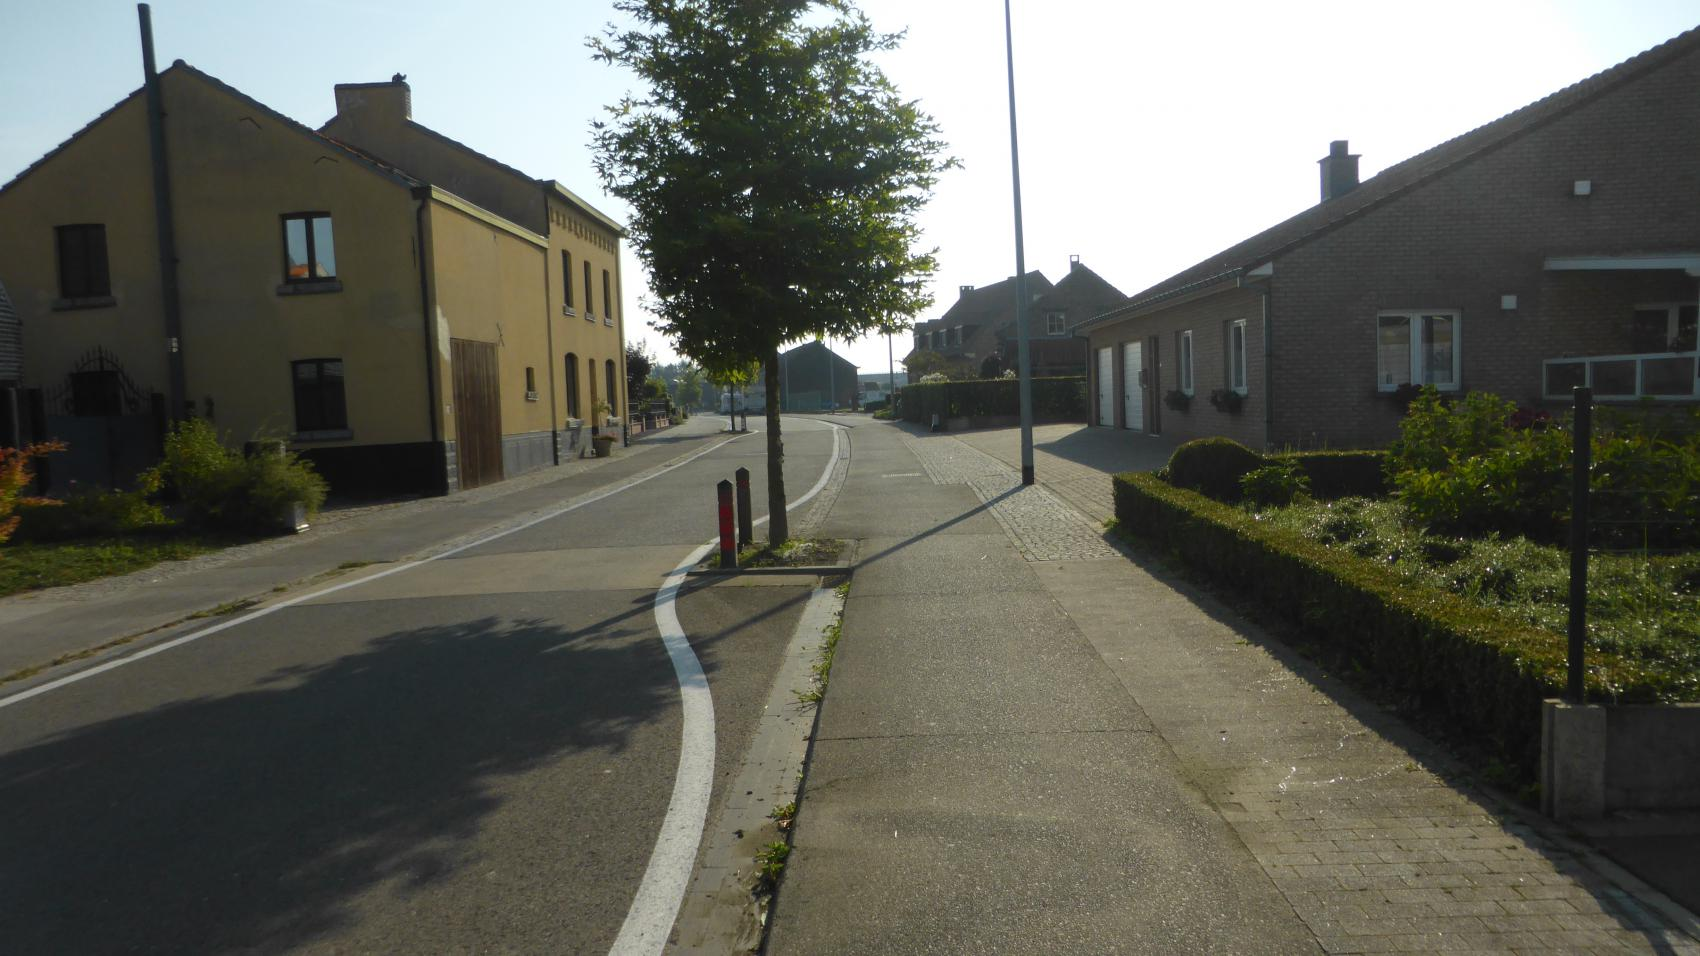 The same location in 2017. Carriageway narrowed, cycle paths continuous and wider, additional section of pavement for pedestrians. There is even space for trees!